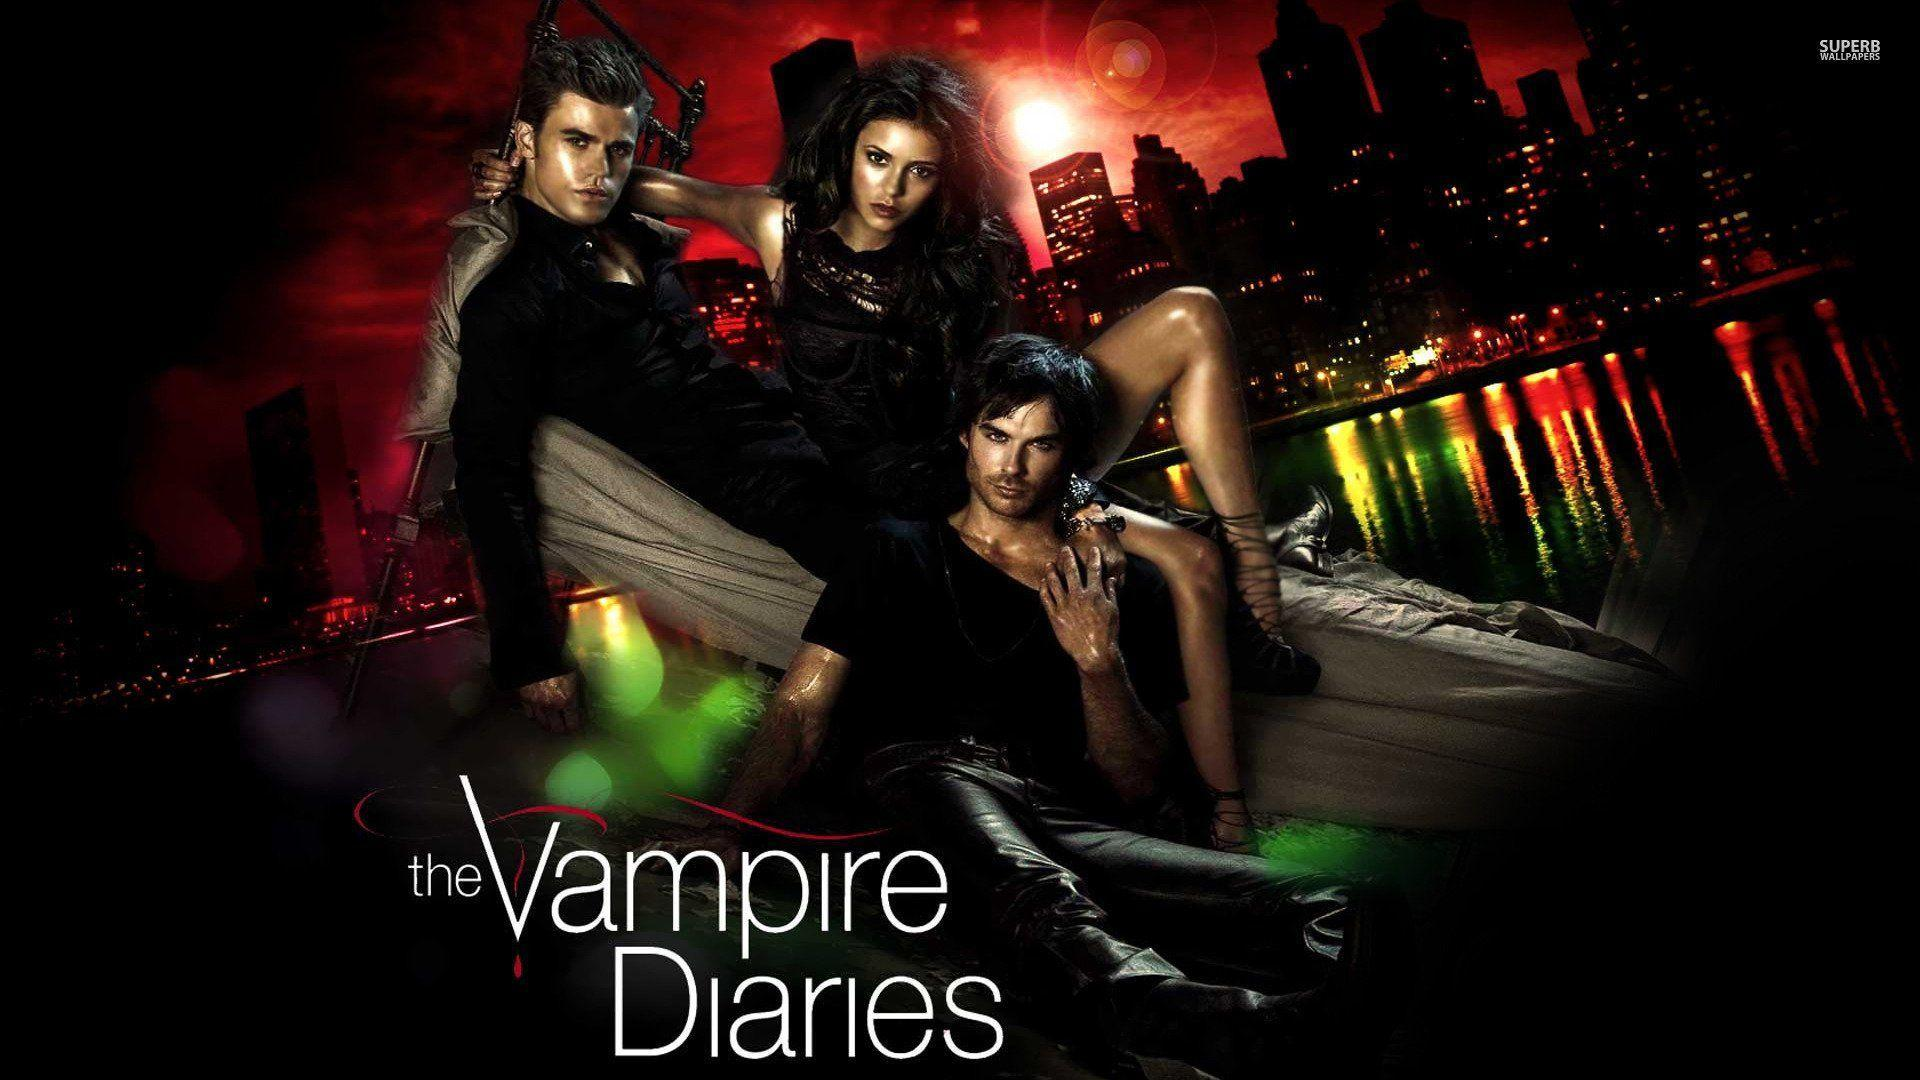 The Vampire Diaries 426381 - WallDevil